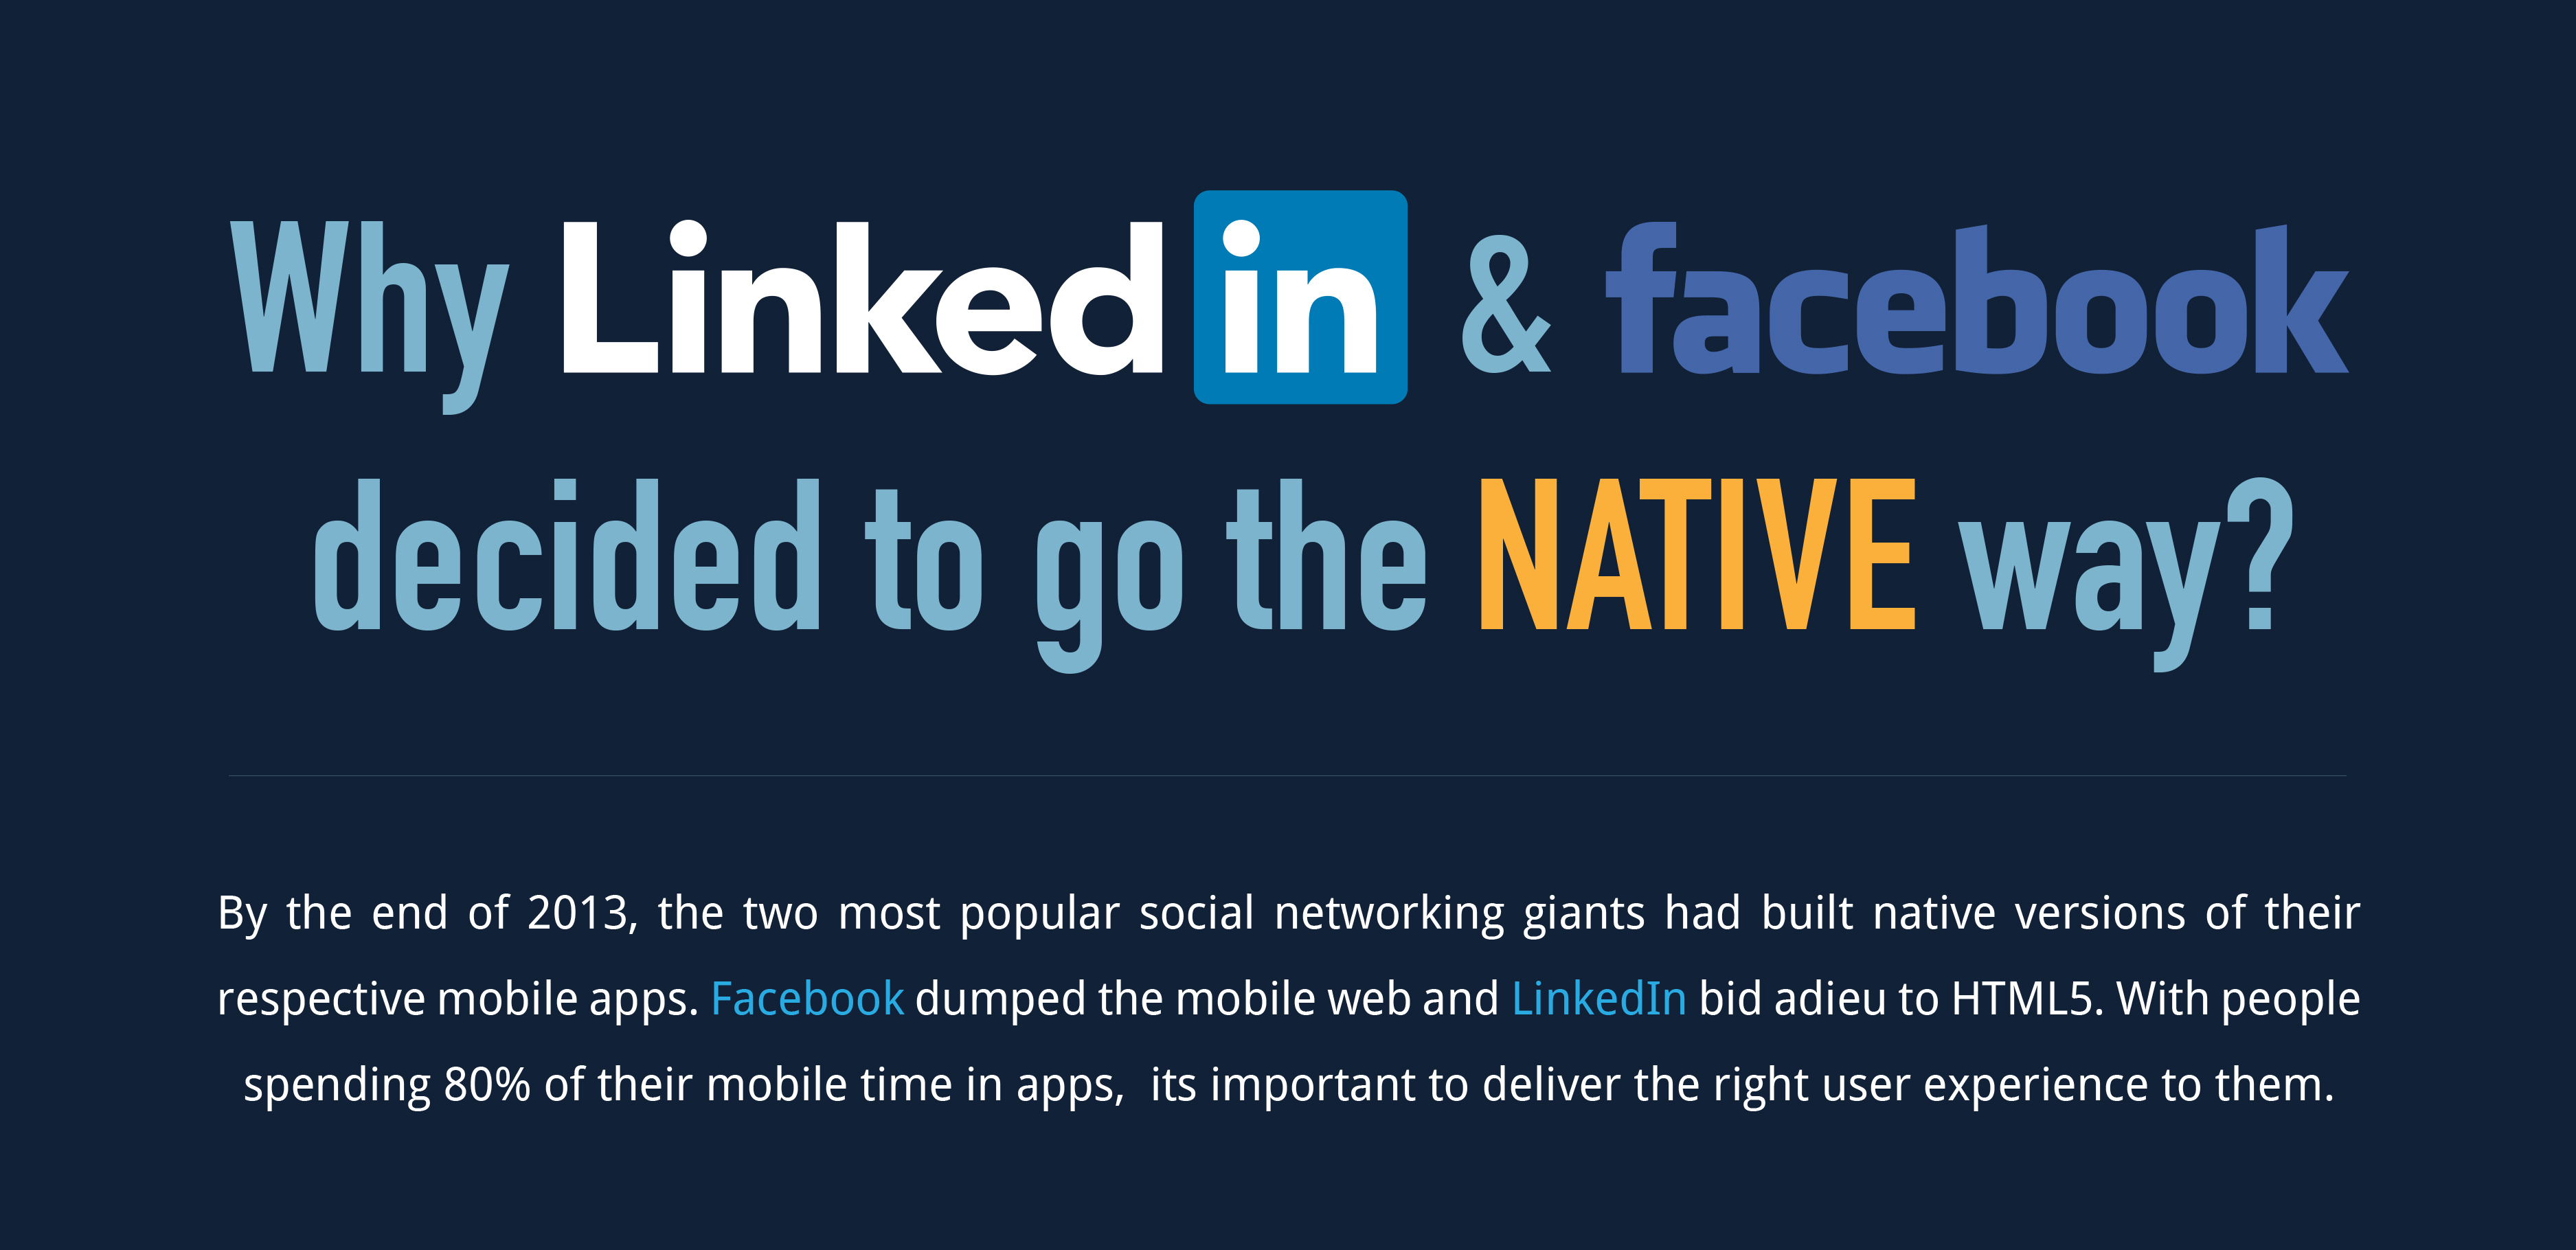 Why LinkedIn & Facebook decided to go the NATIVE way?